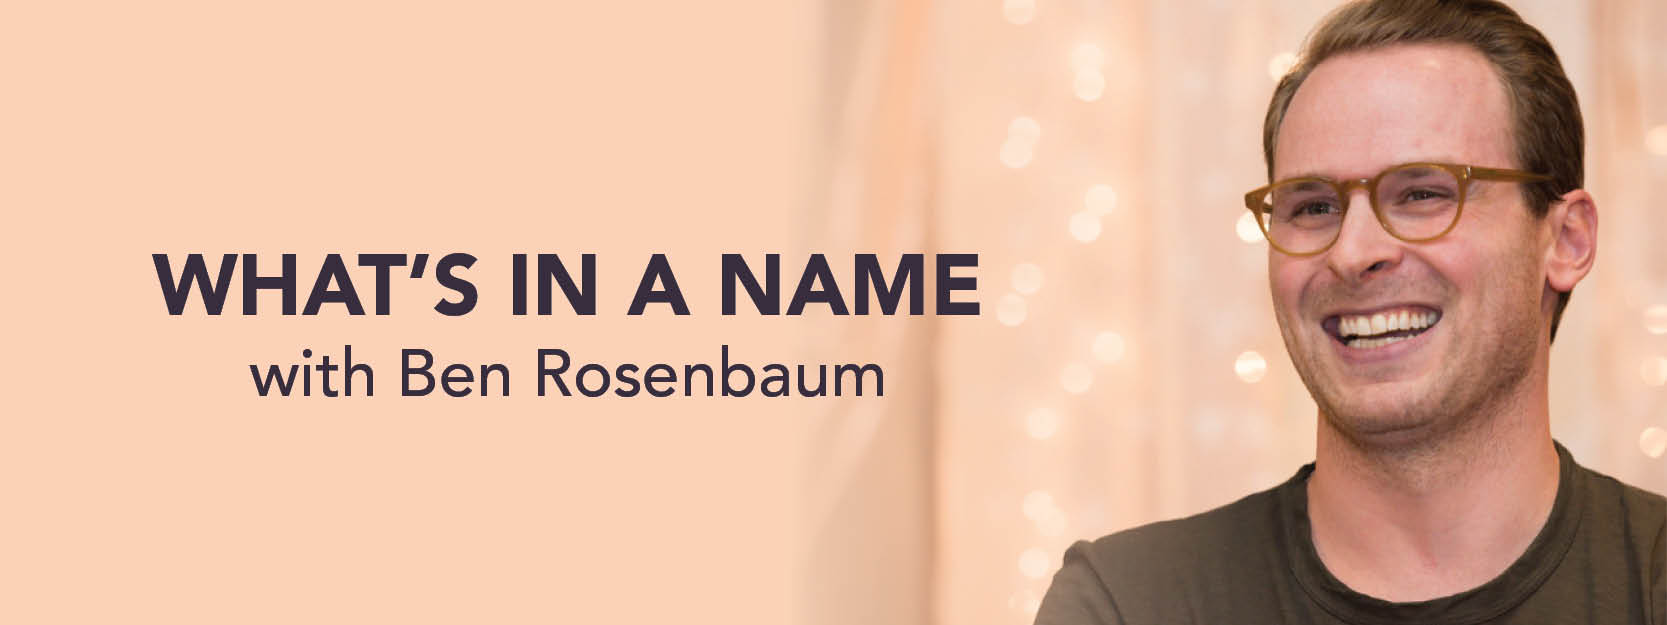 What's in a Name with Ben Rosenbaum